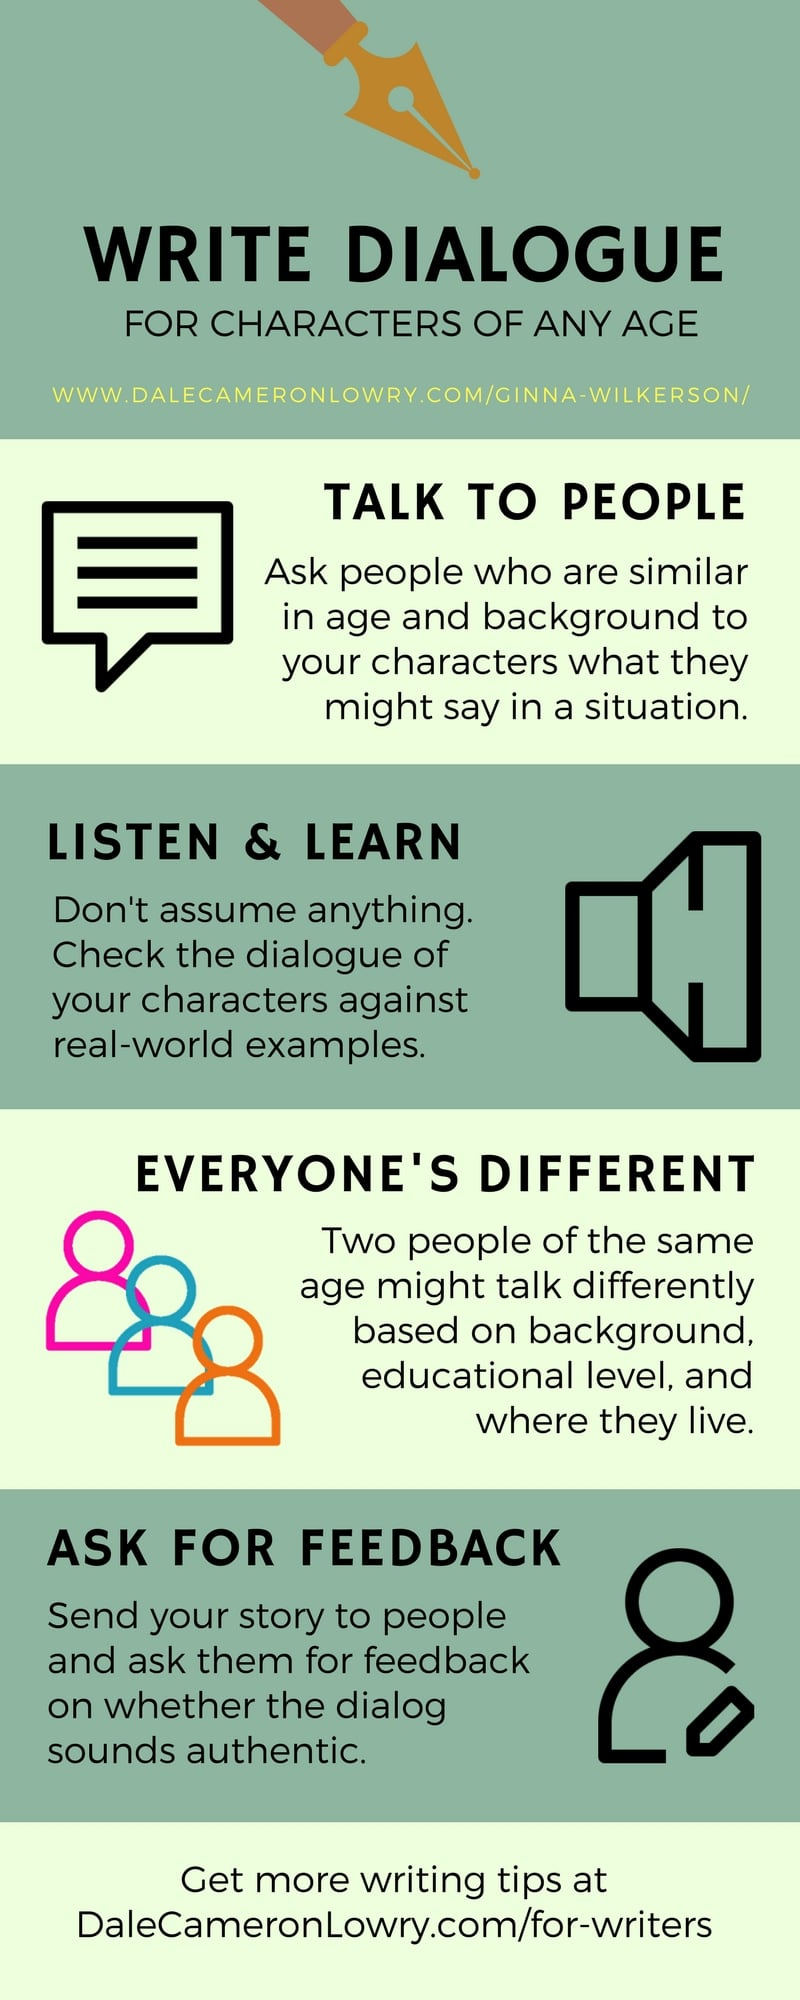 infographic condensing the main article points